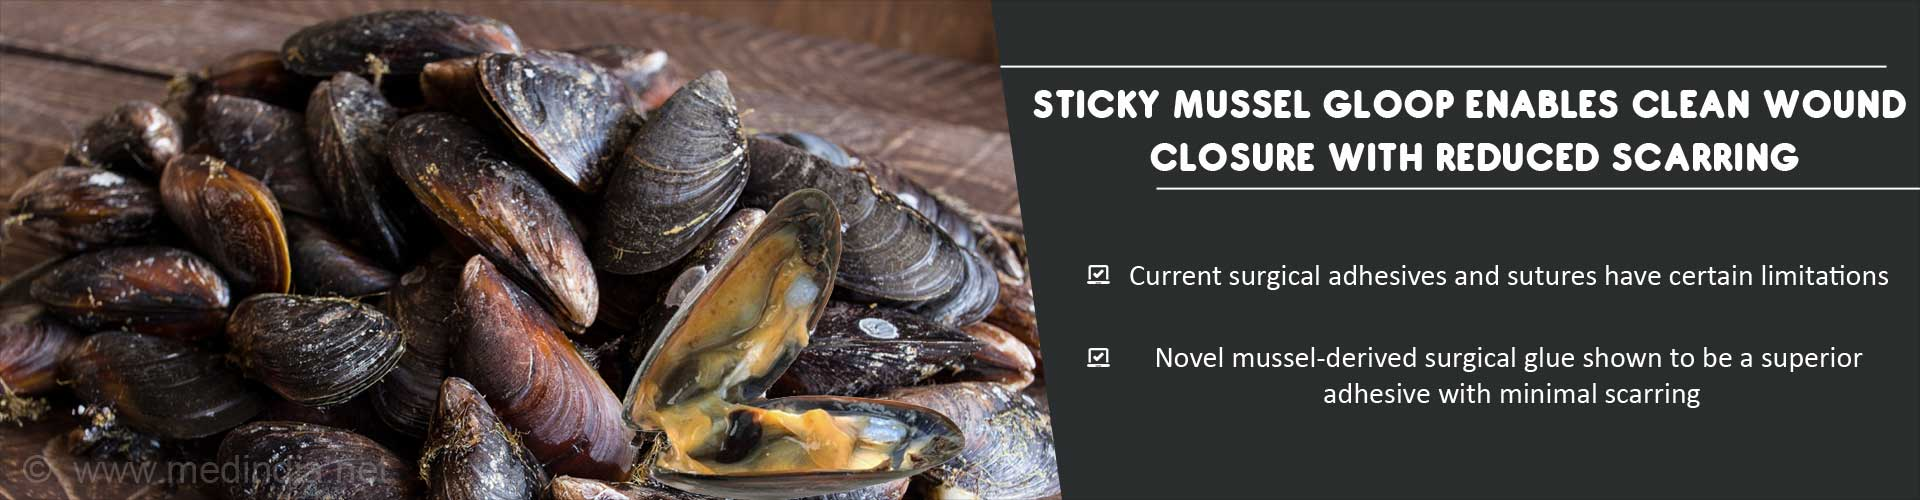 Sticky mussel gloop enables clean wound closure with reduced scarring - Current surgical adhesives have certain limitations - Novel mussel-derived surgical glue shown to be superior adhseive with minimal scarring